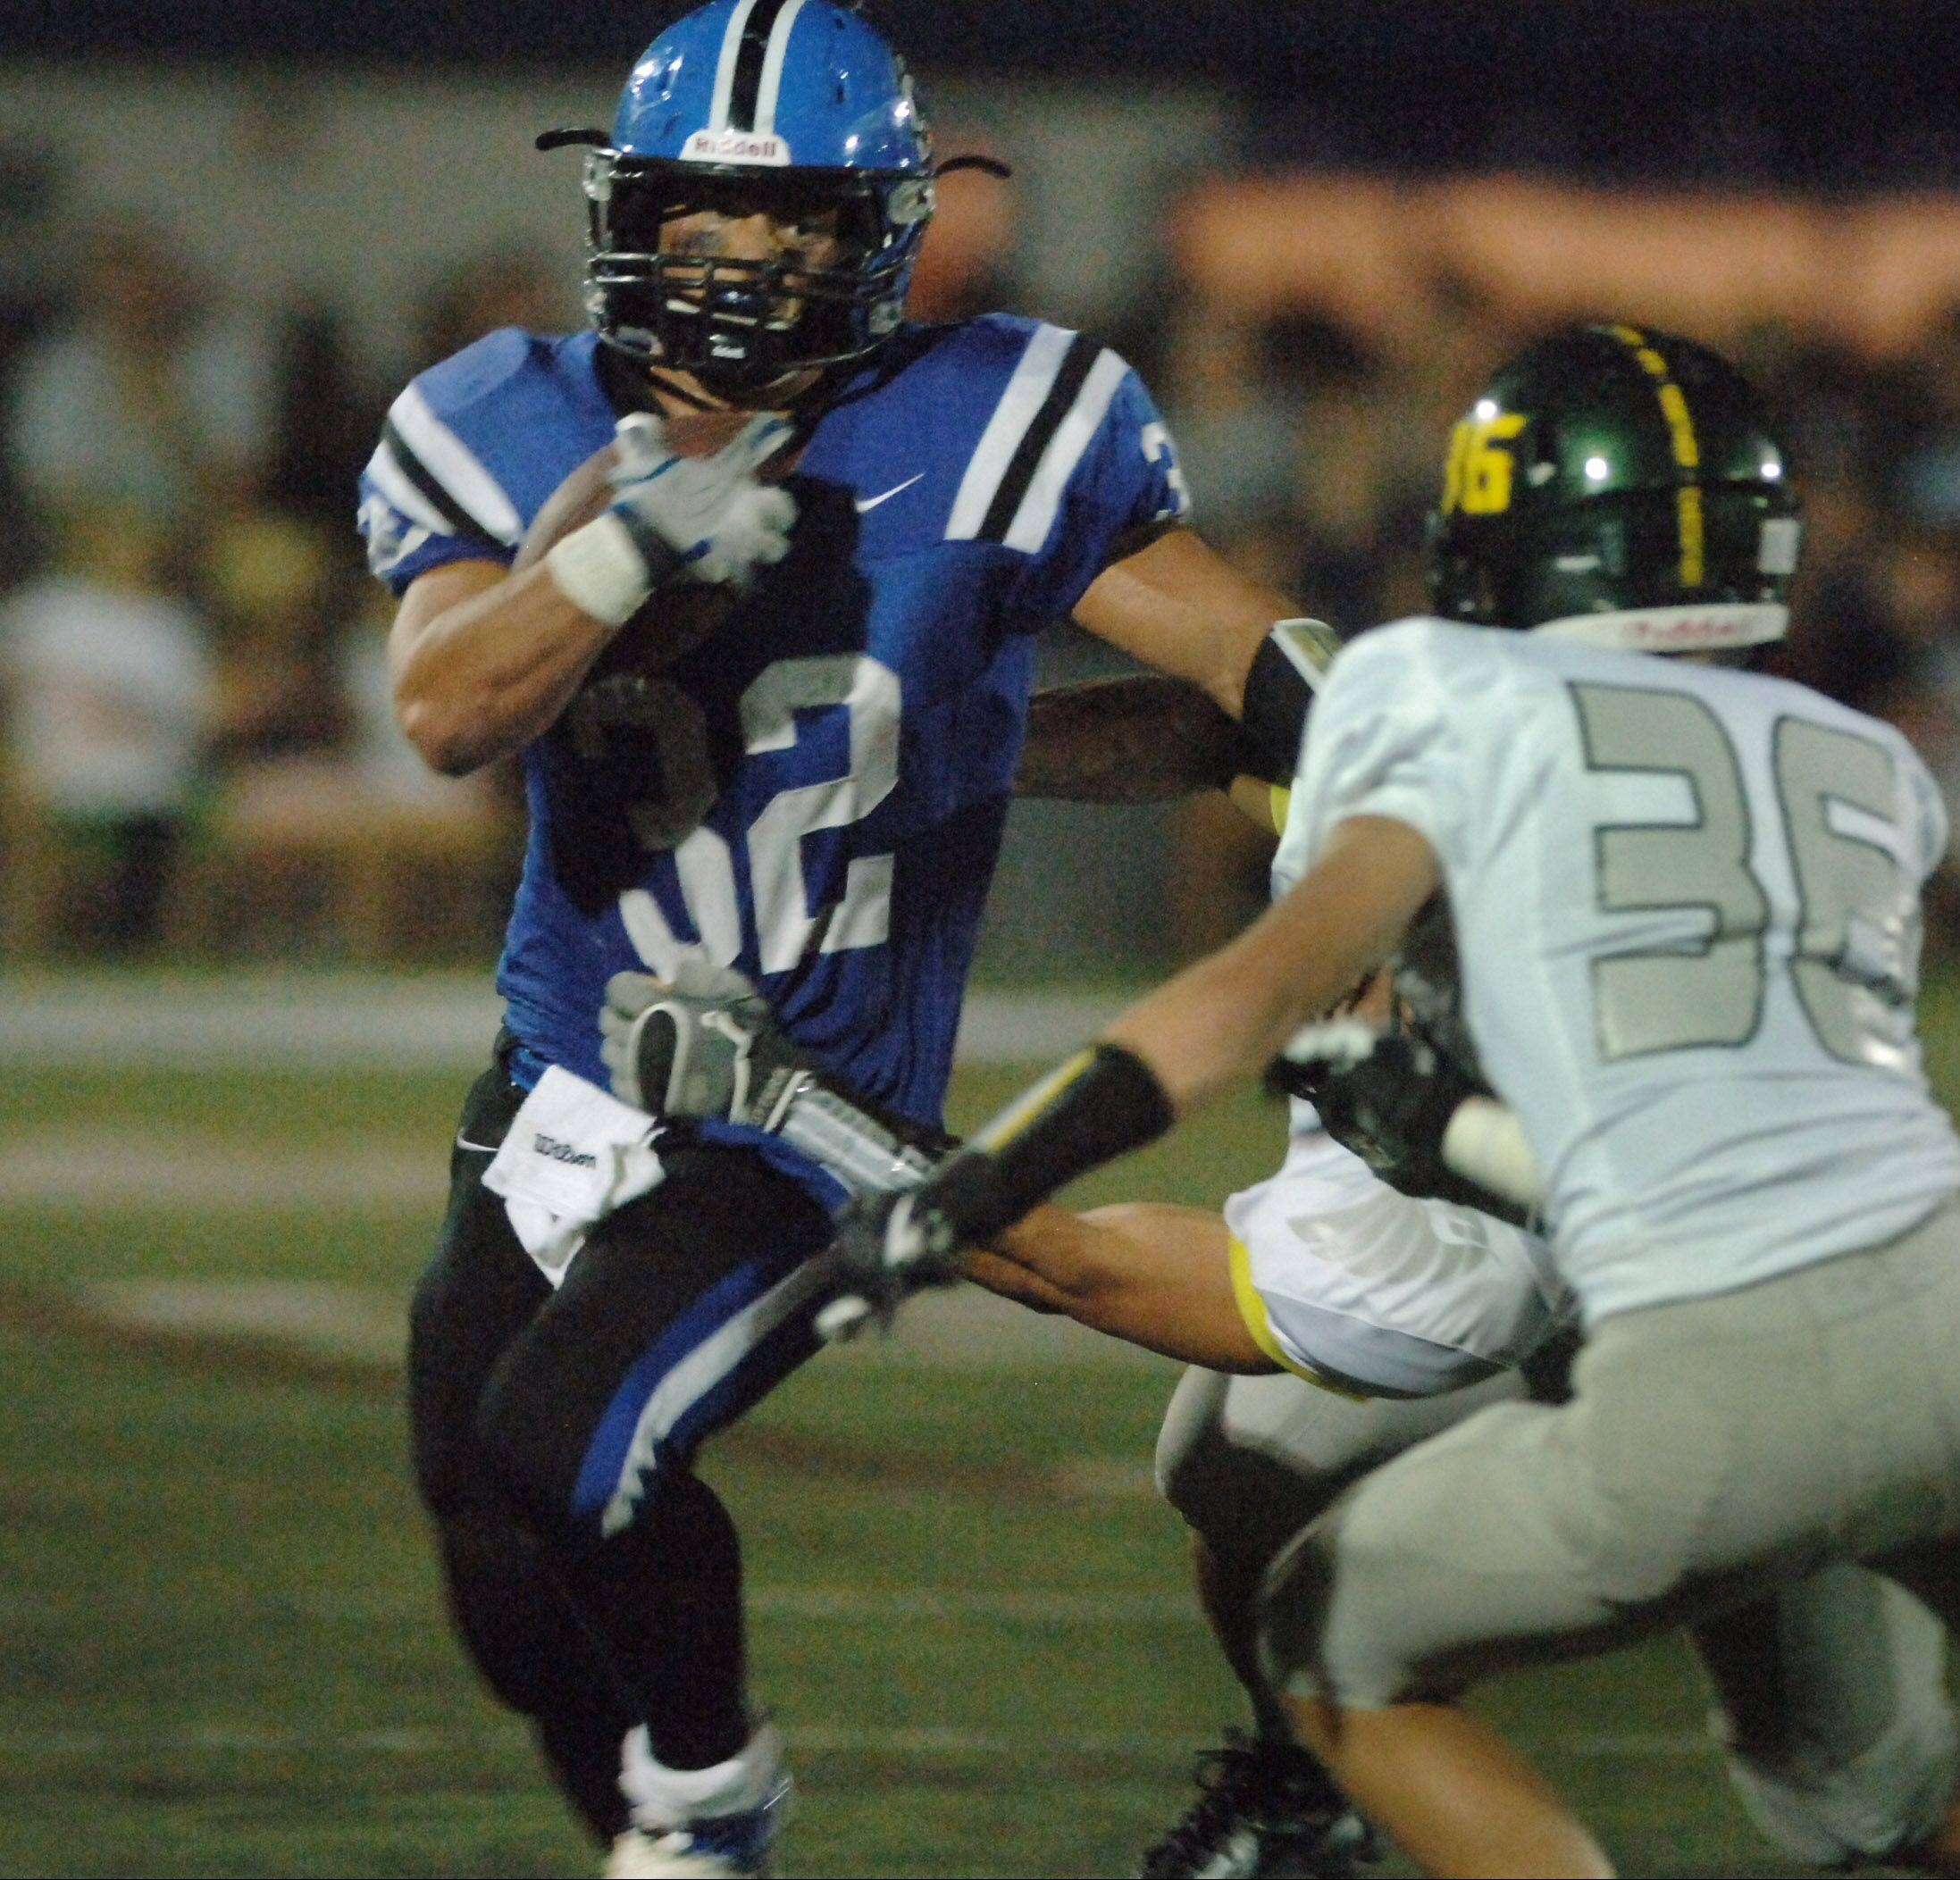 Lake Zurich bears down